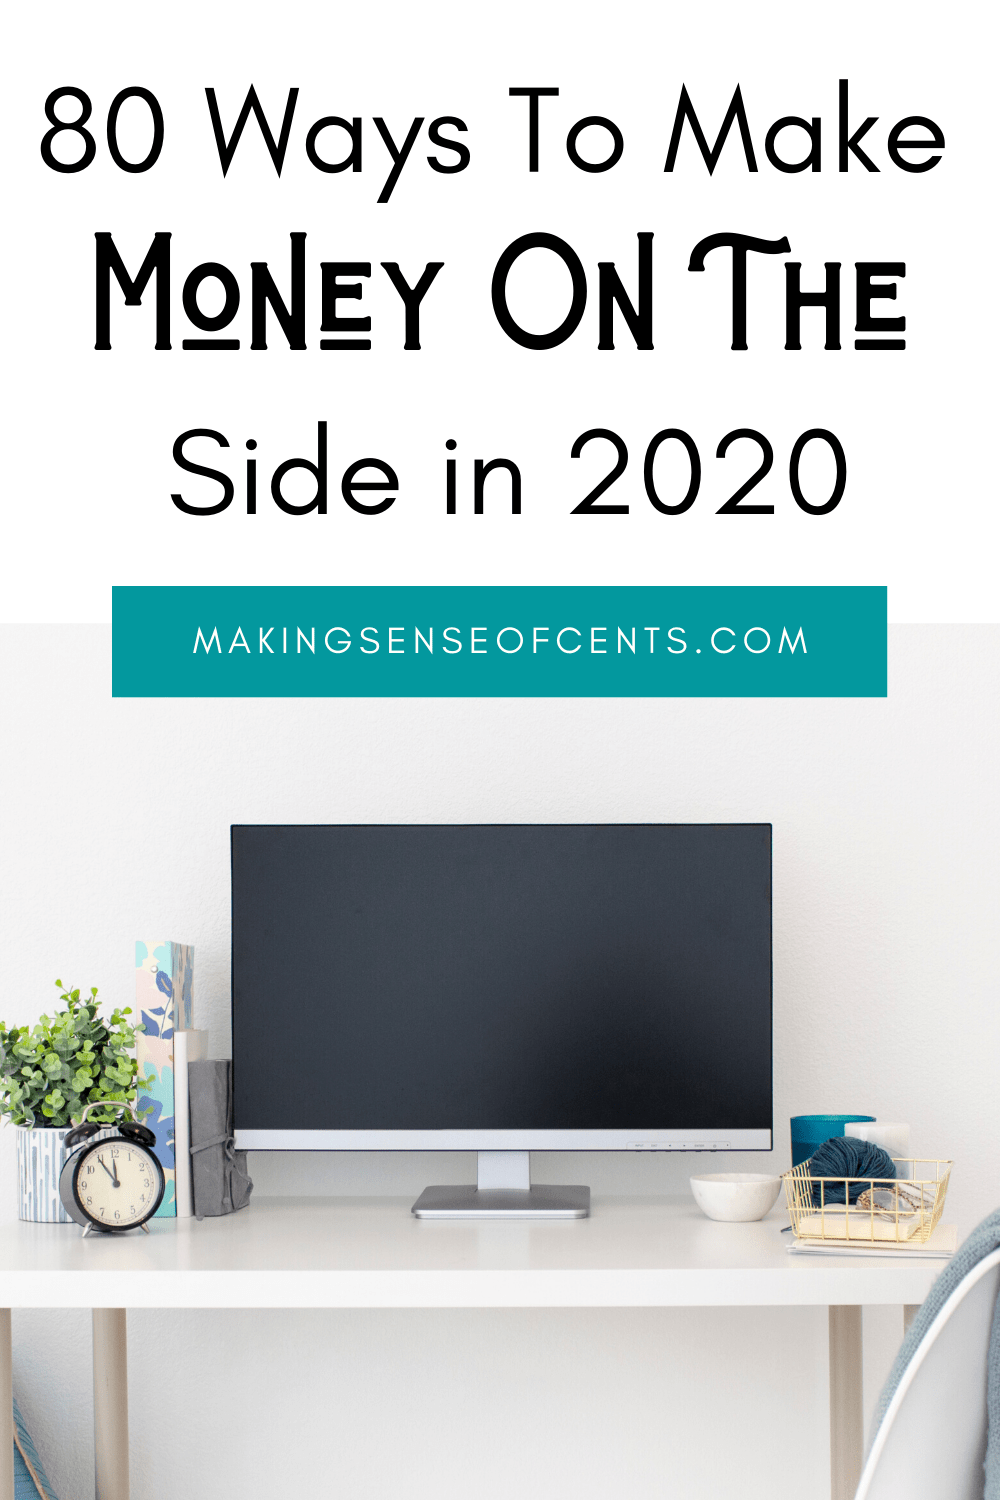 80 Ways To Make Money On The Side in 2020